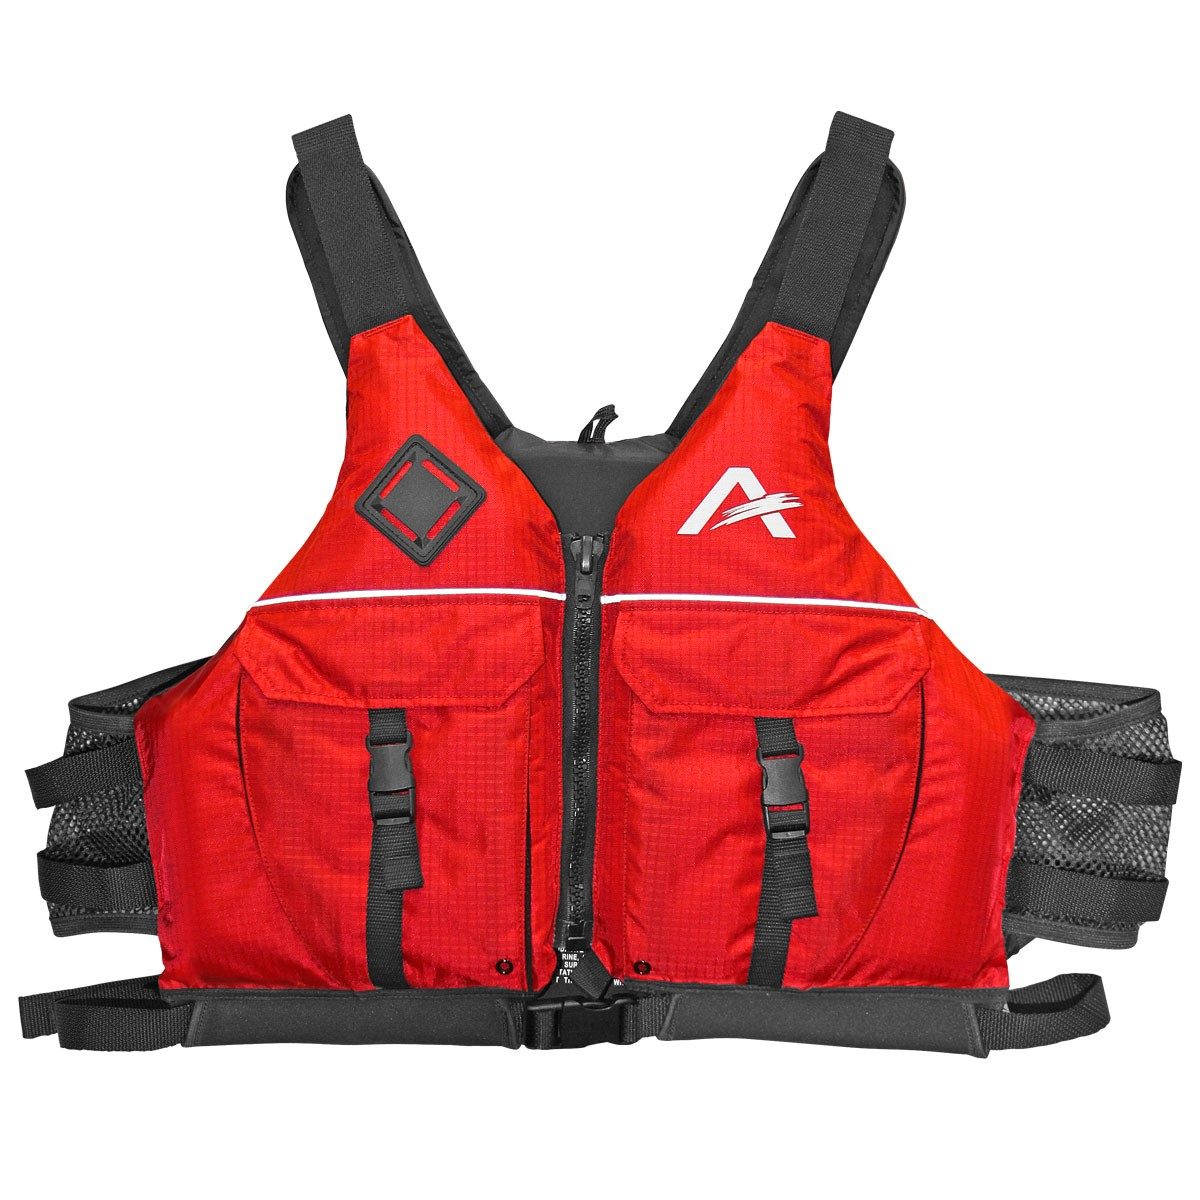 Airhead Deluxe Paddlesports Life Vest Red